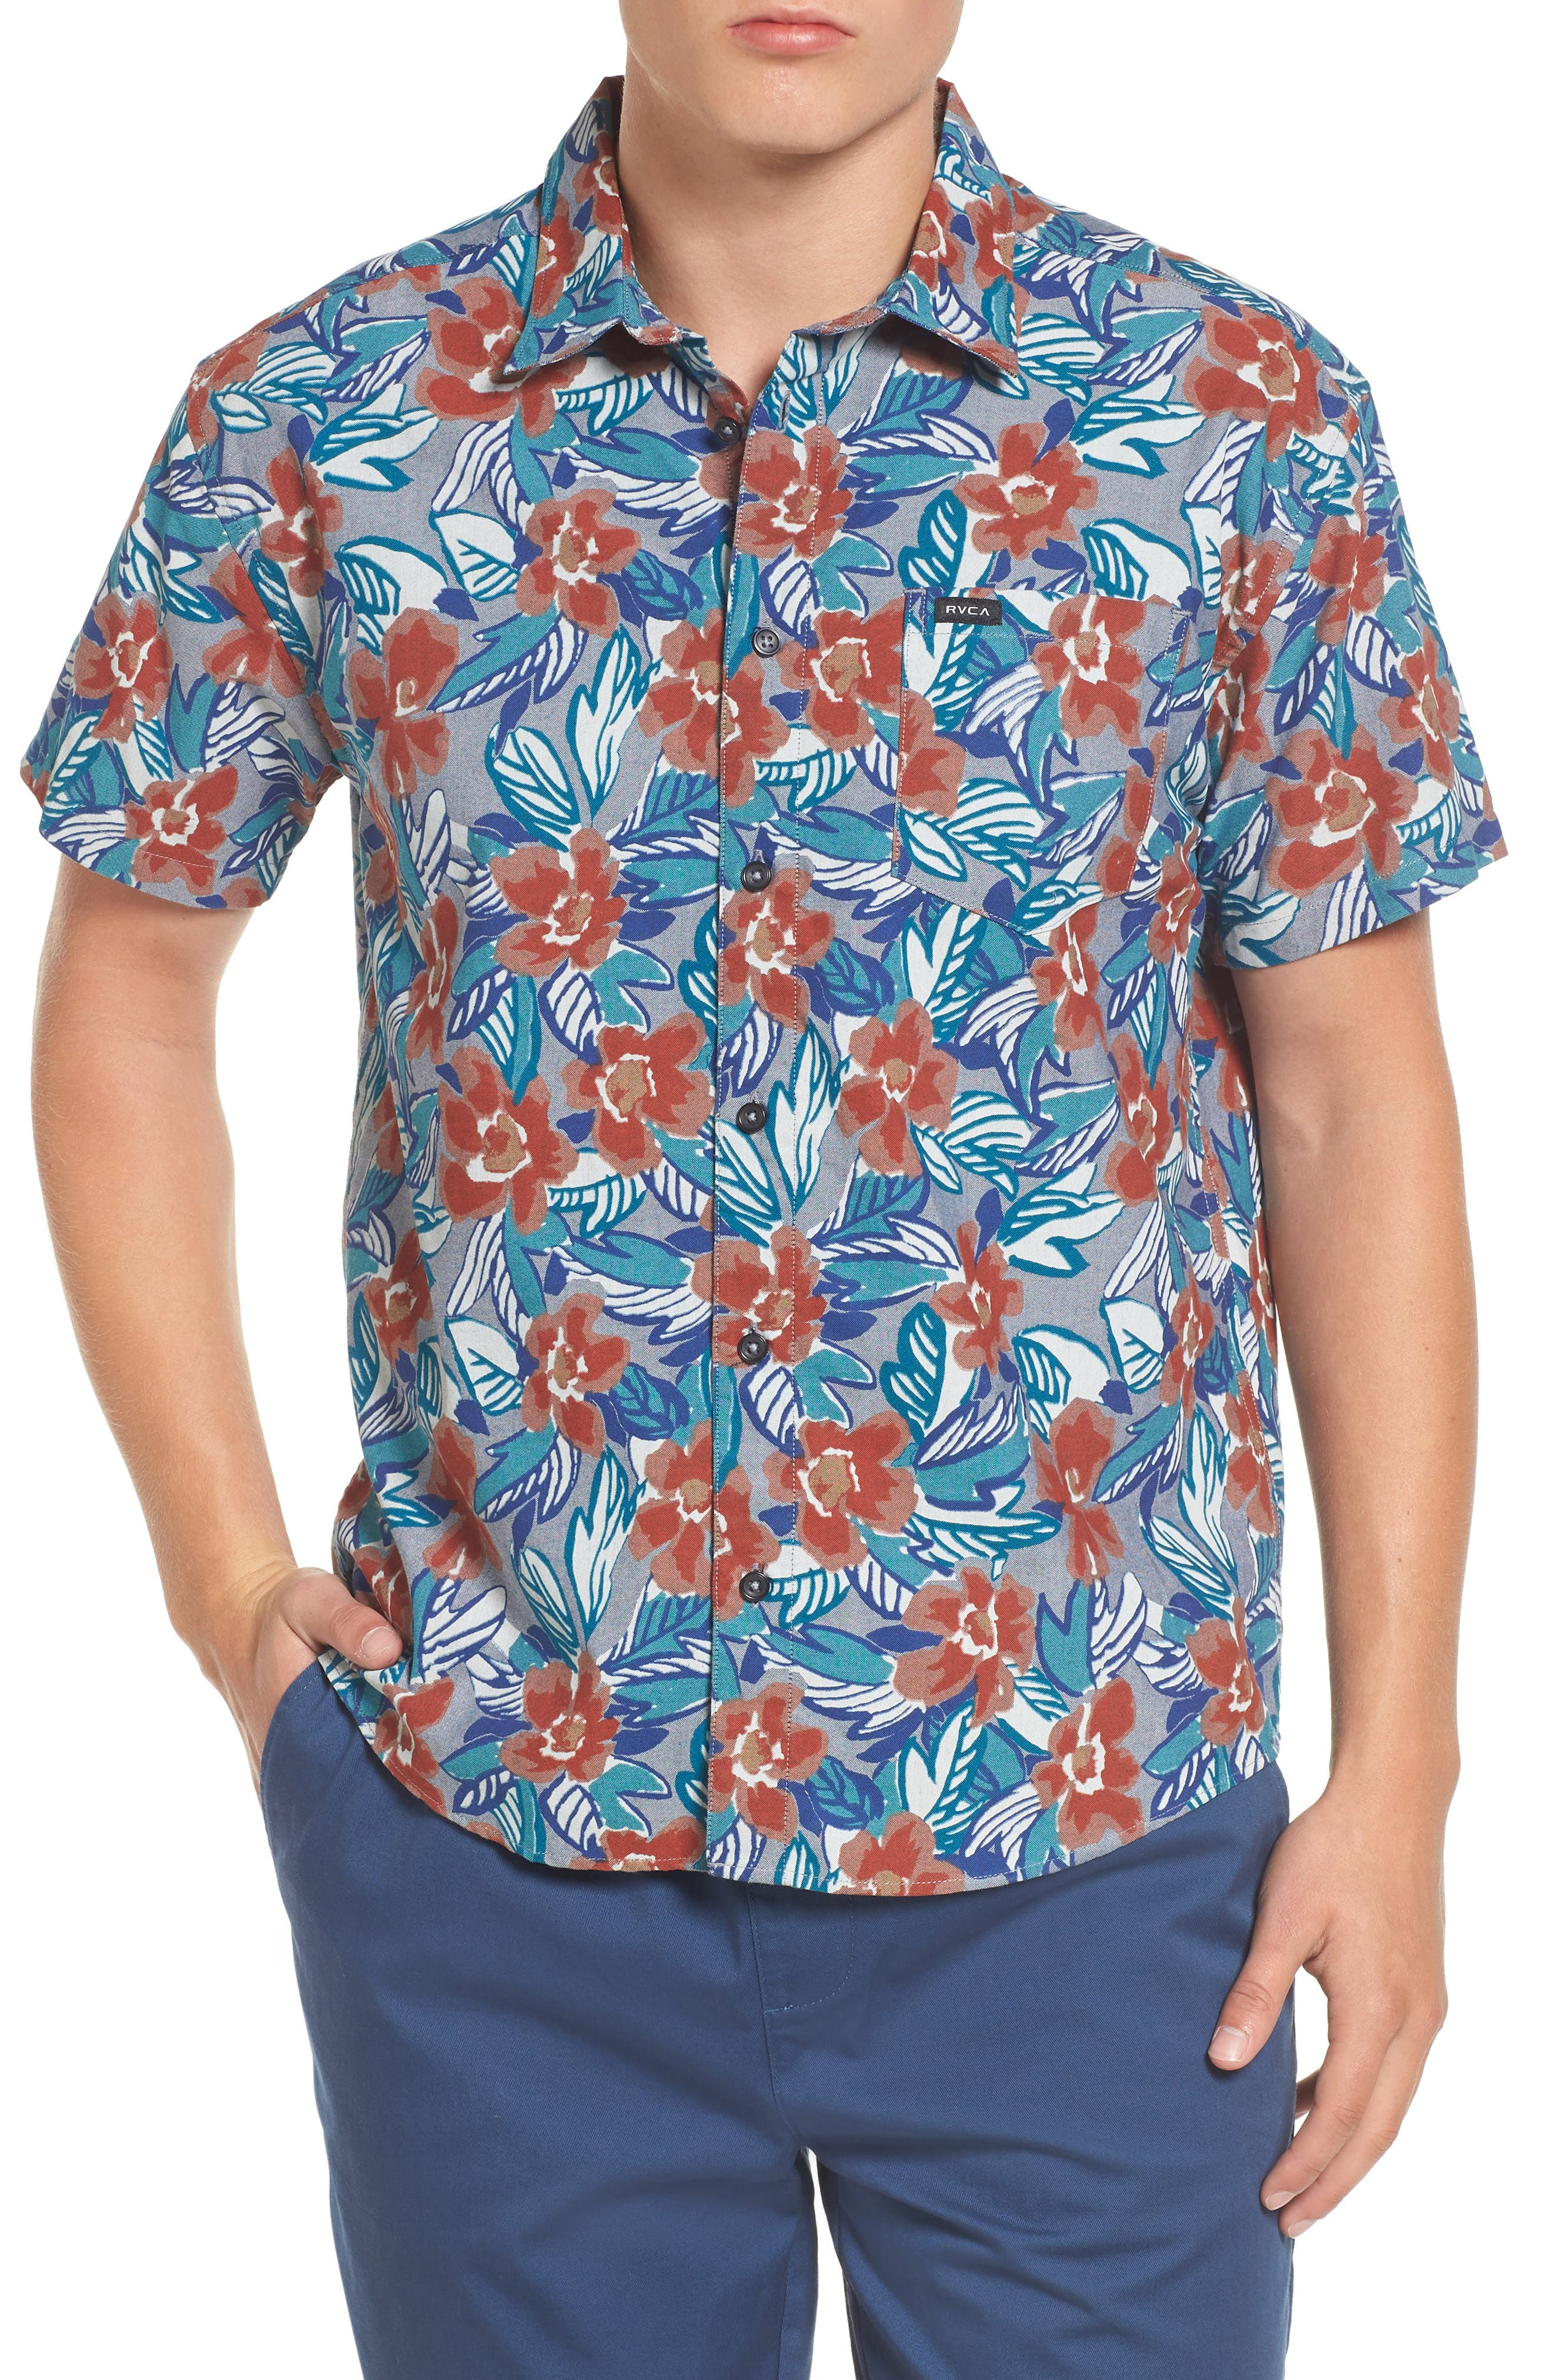 RVCA Paradise Valley Floral Woven Shirt